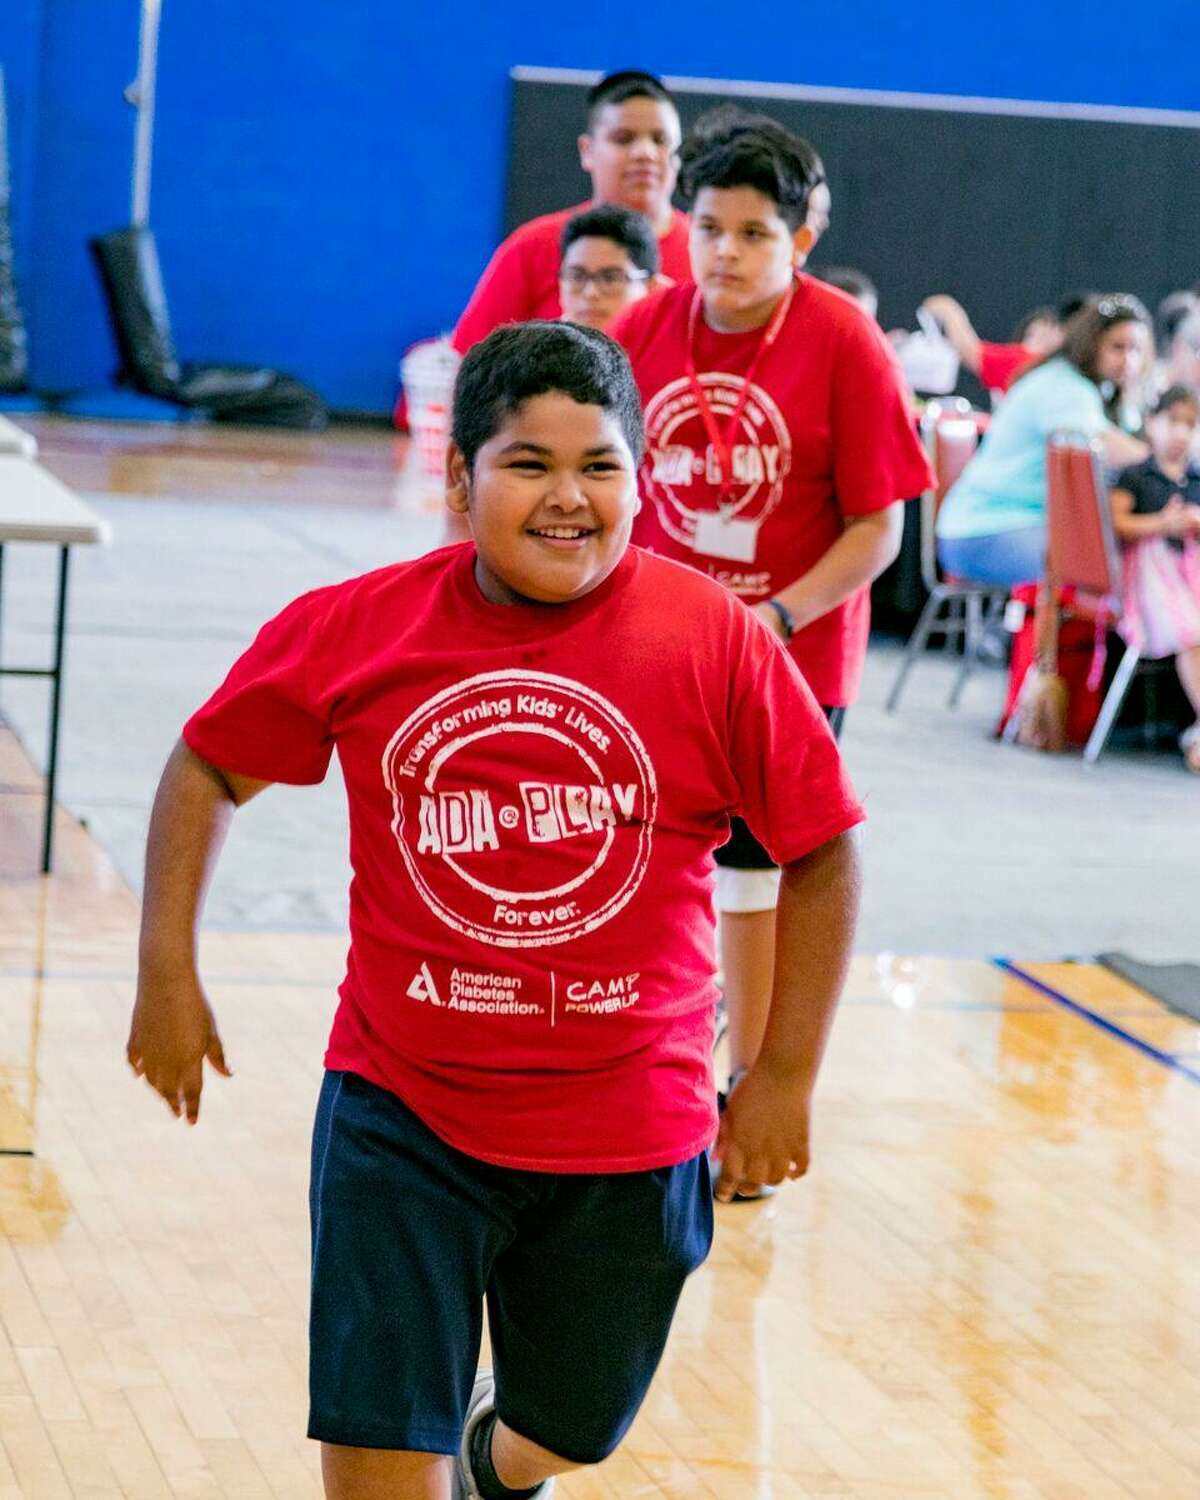 Nathaniel Rivera enjoys physical activities at the American Diabetes Association's Camp PowerUp. The nonprofit association hosts the camp each summer in San Antonio for children who are at risk of developing Type 2 diabetes.